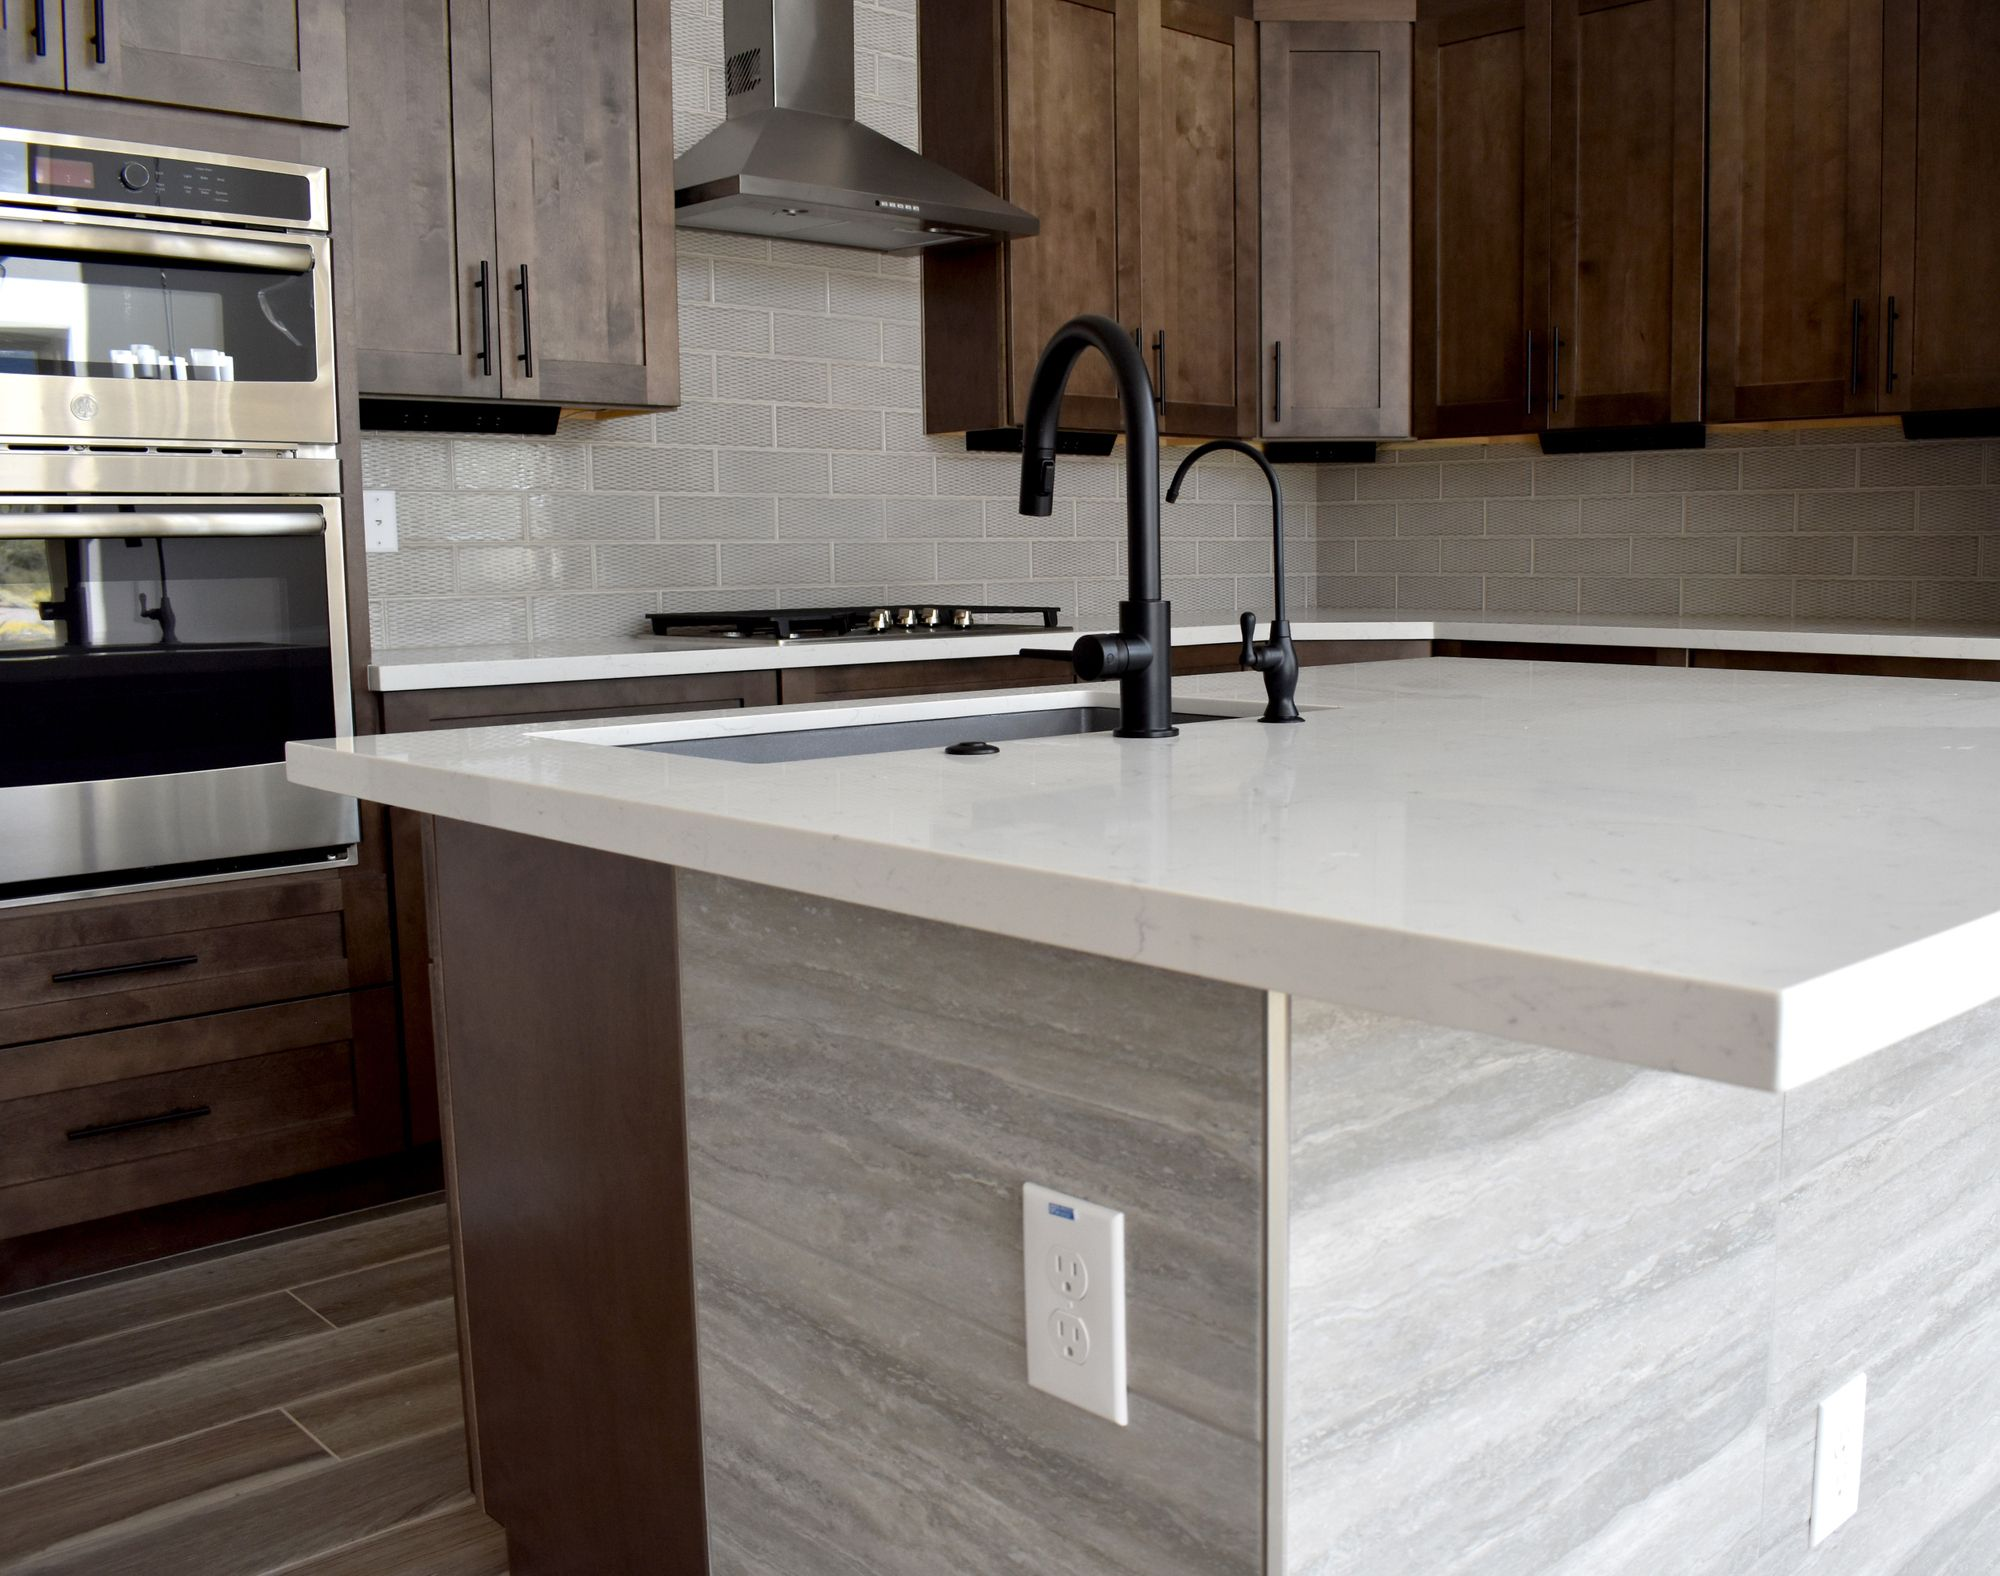 Rustic Kitchen With Ash Wood Cabinets And Quartz Countertops In 2020 Quartz Countertops Design Your Dream House White Quartz Countertop